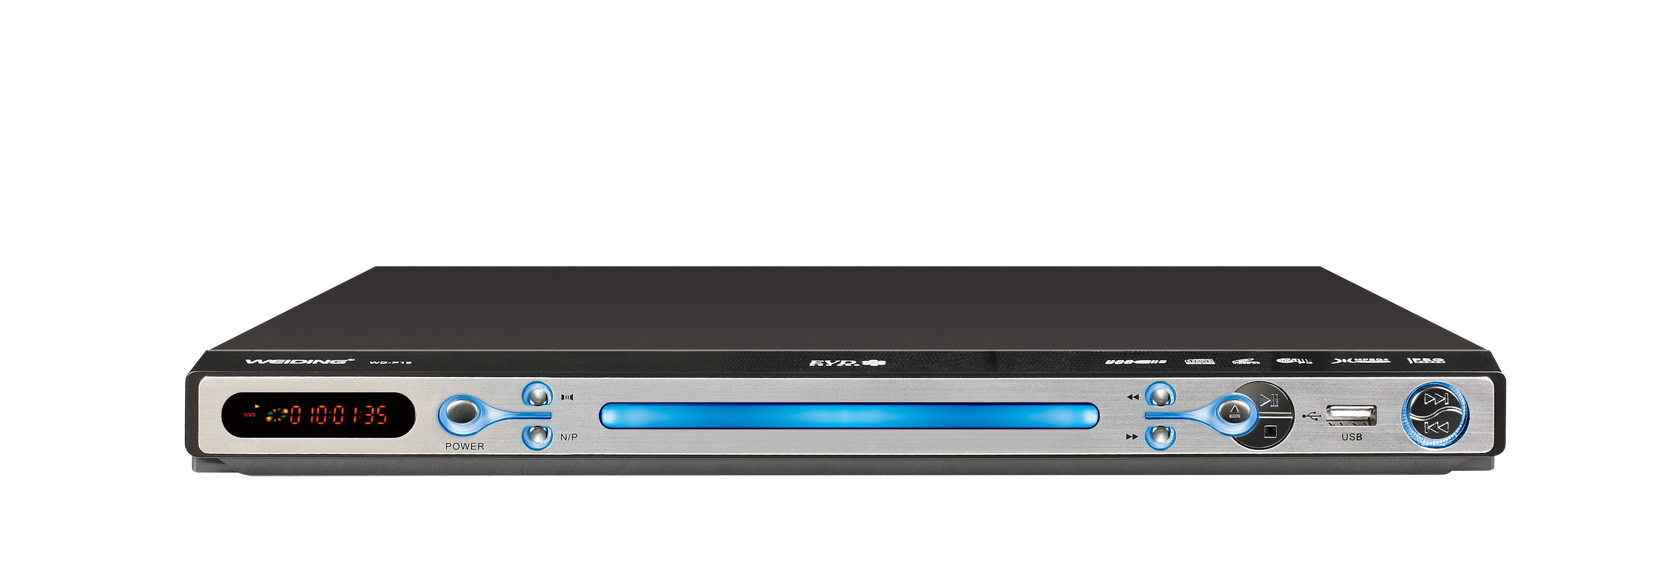 DVD Player/HDMI Player (WD-P19) - China Dvd Player, Divx Dvd Player